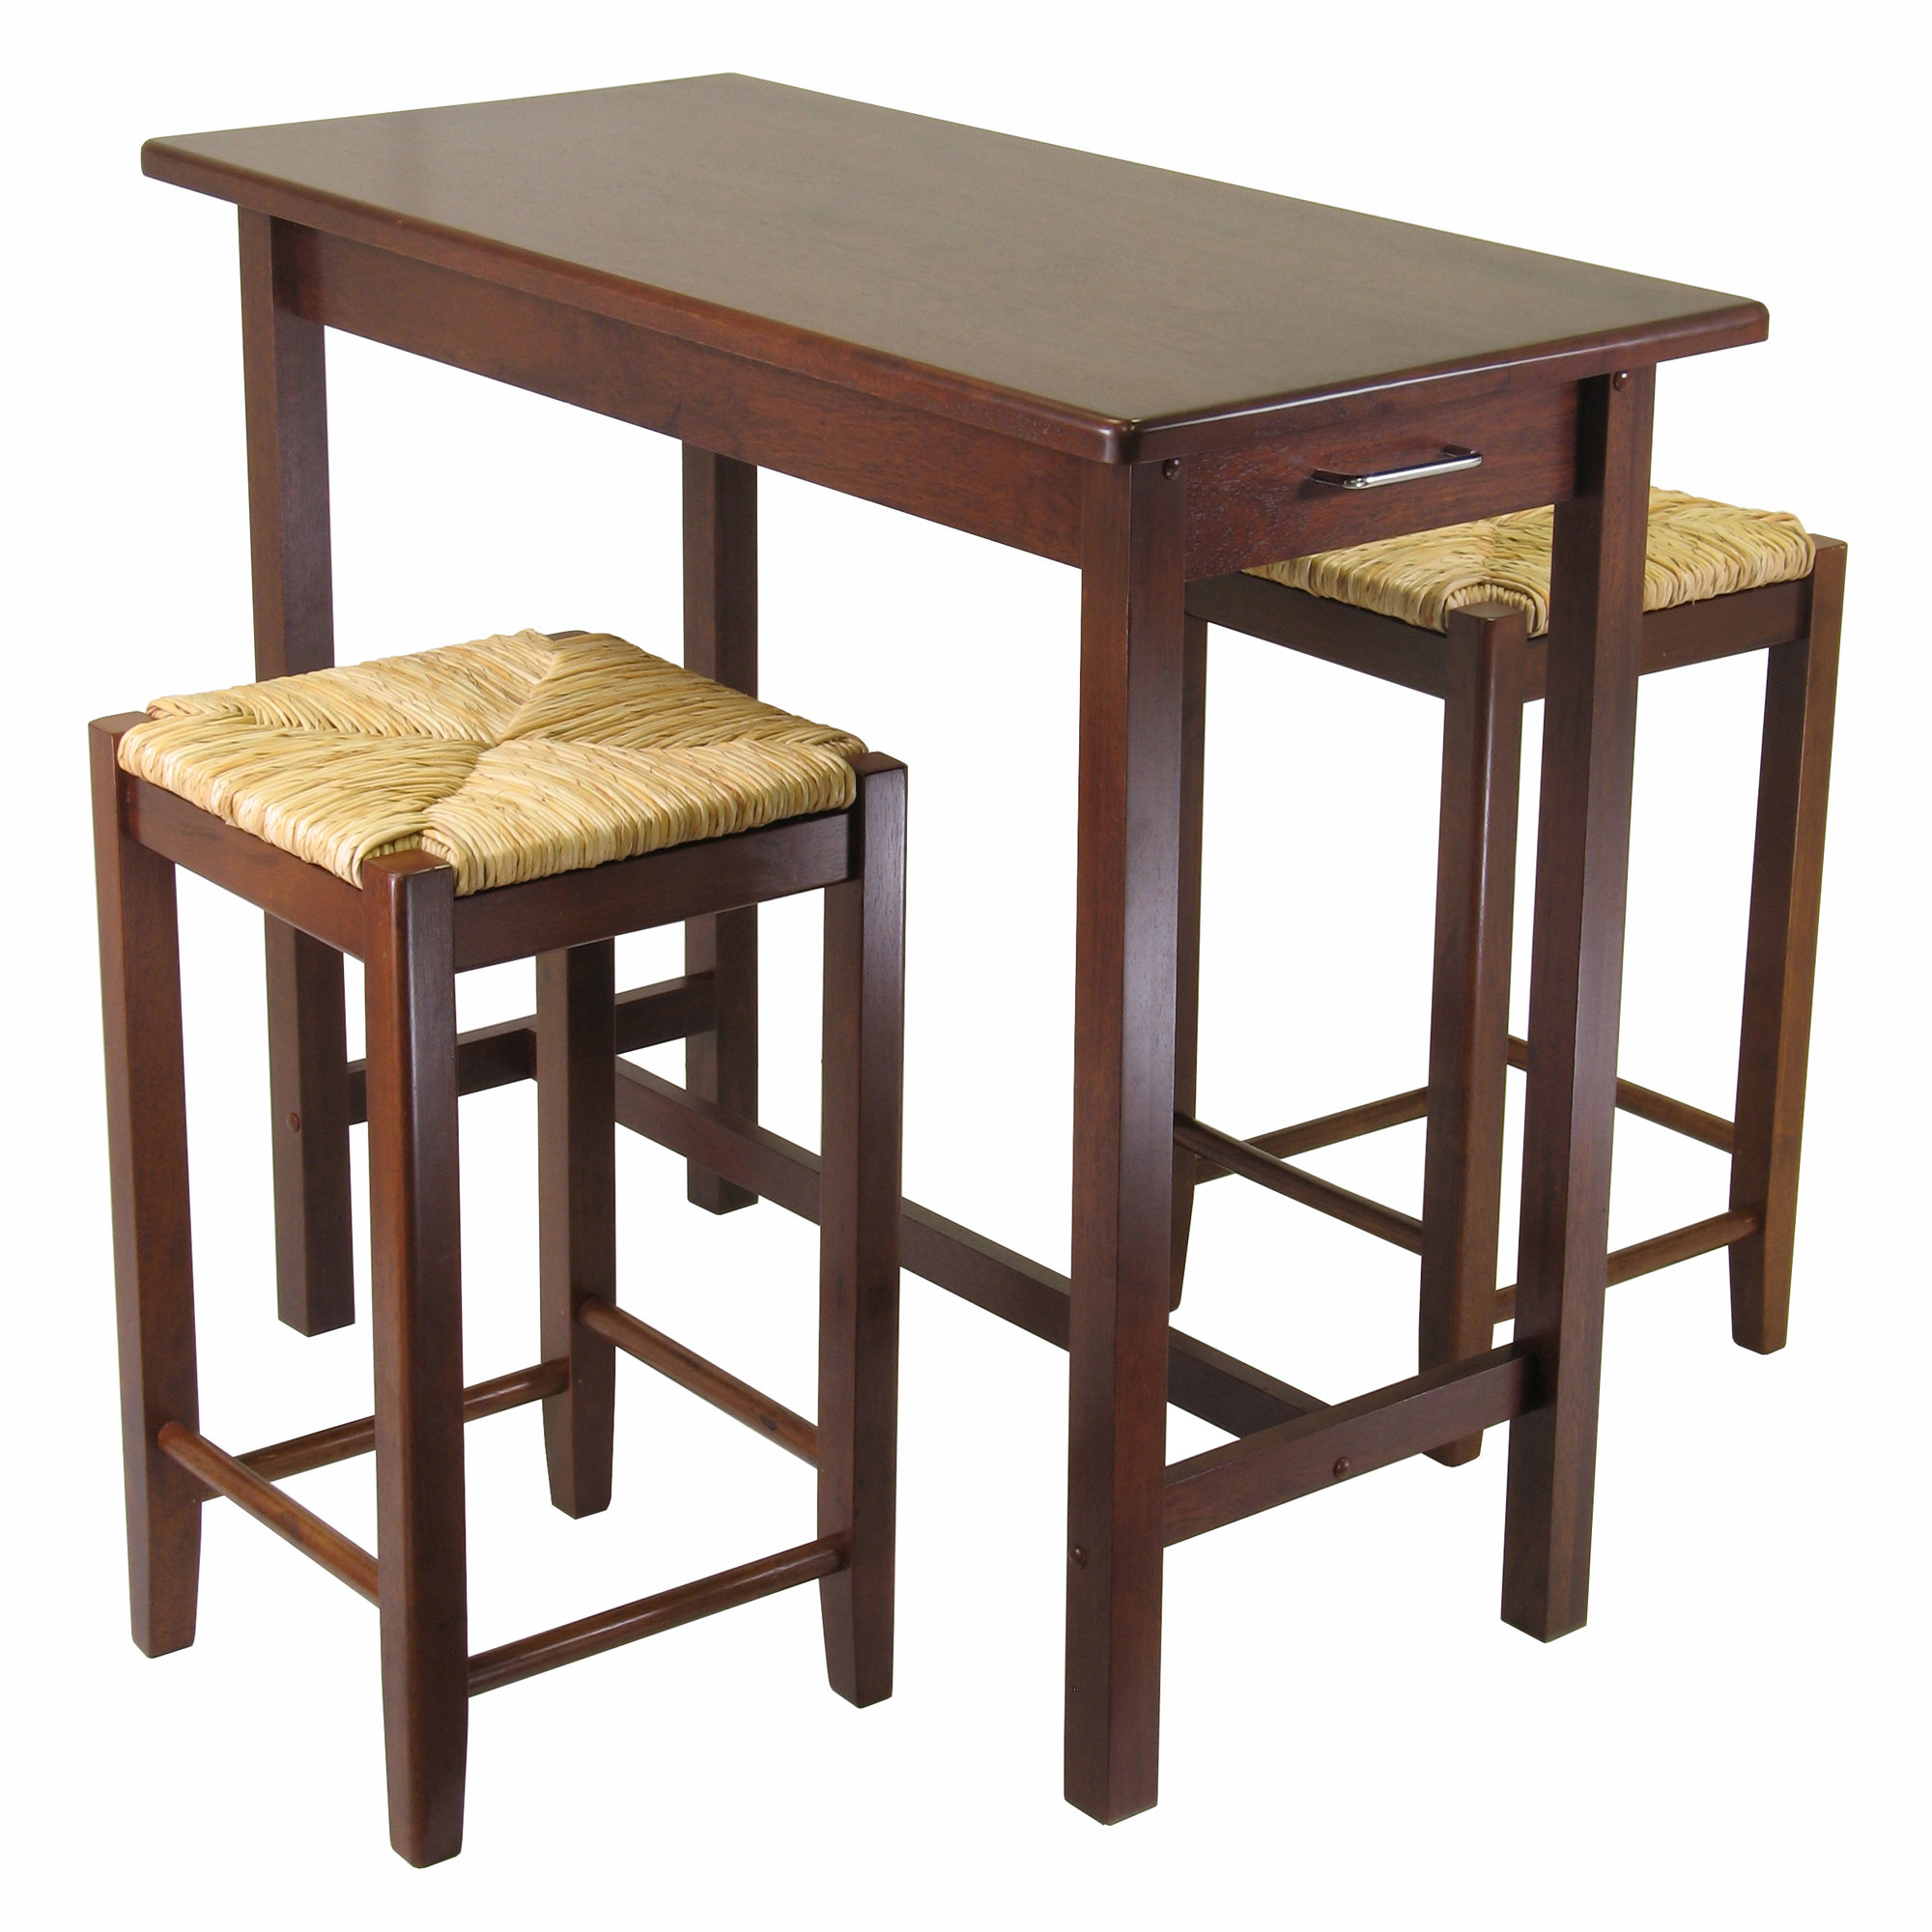 Fashionable Winsome 3 Piece Counter Height Dining Sets In Winsome 3 Piece Counter Height Dining Set (Gallery 1 of 20)